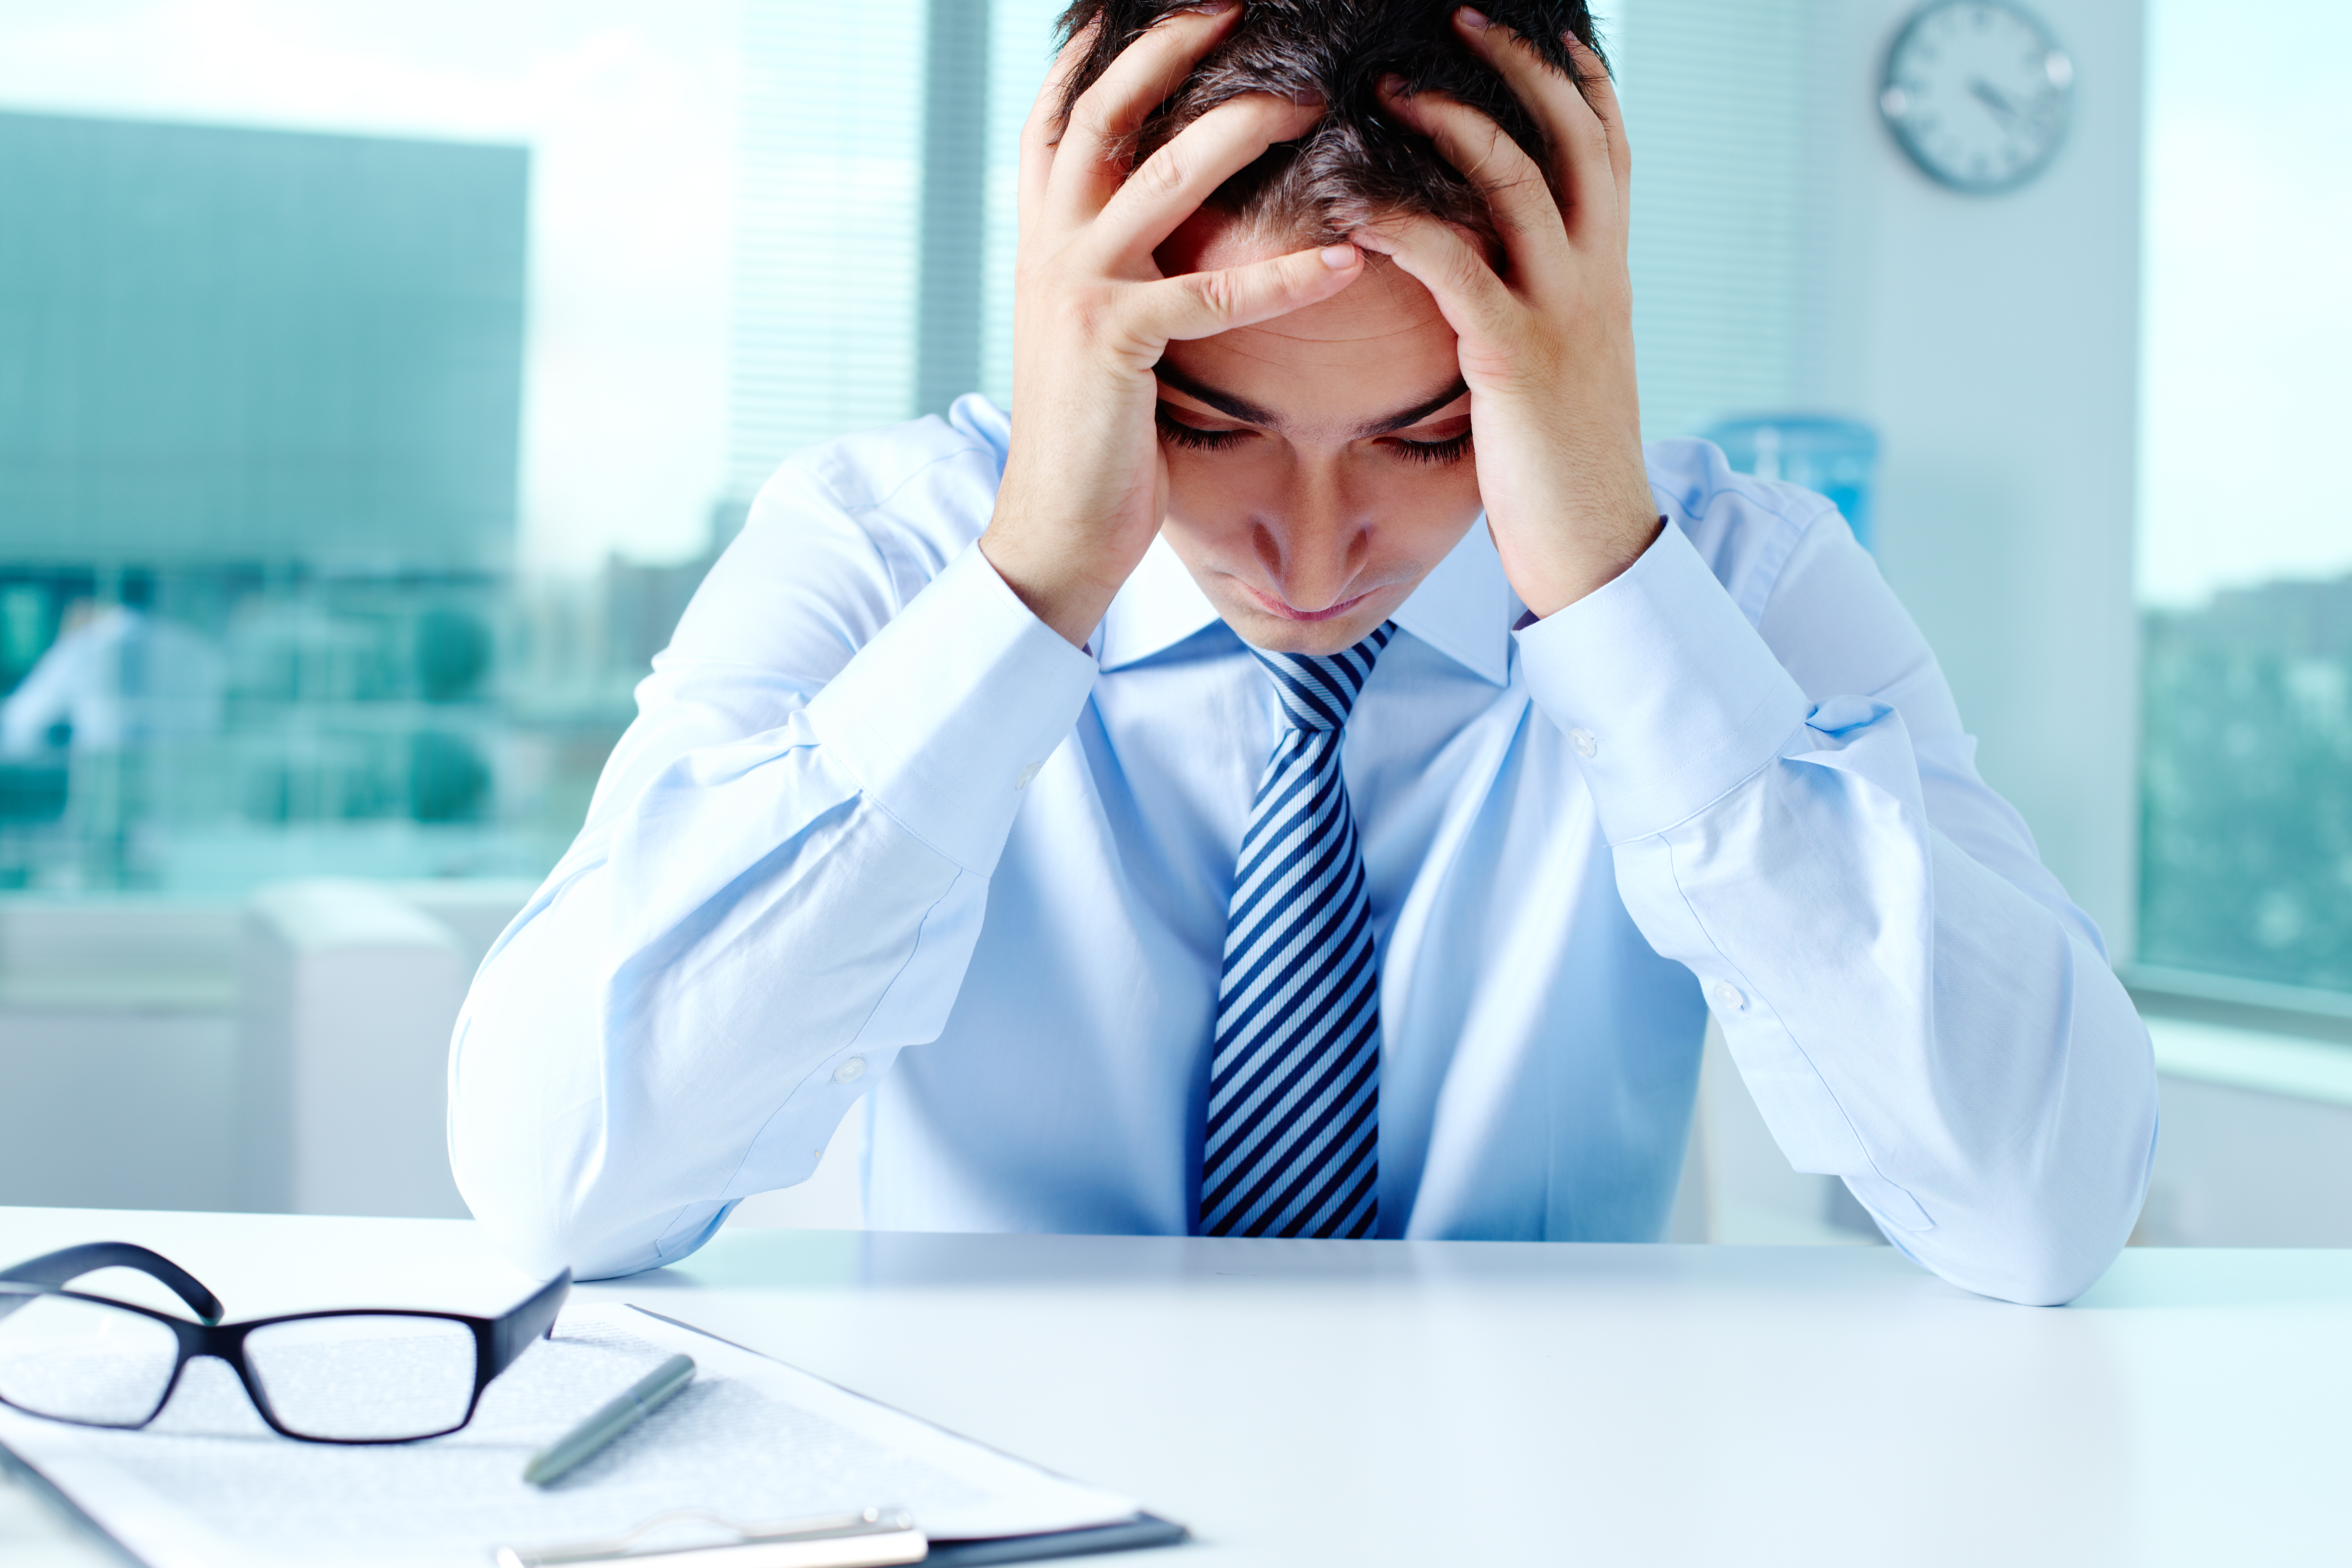 Stressed businessman sitting at workplace and touching his head